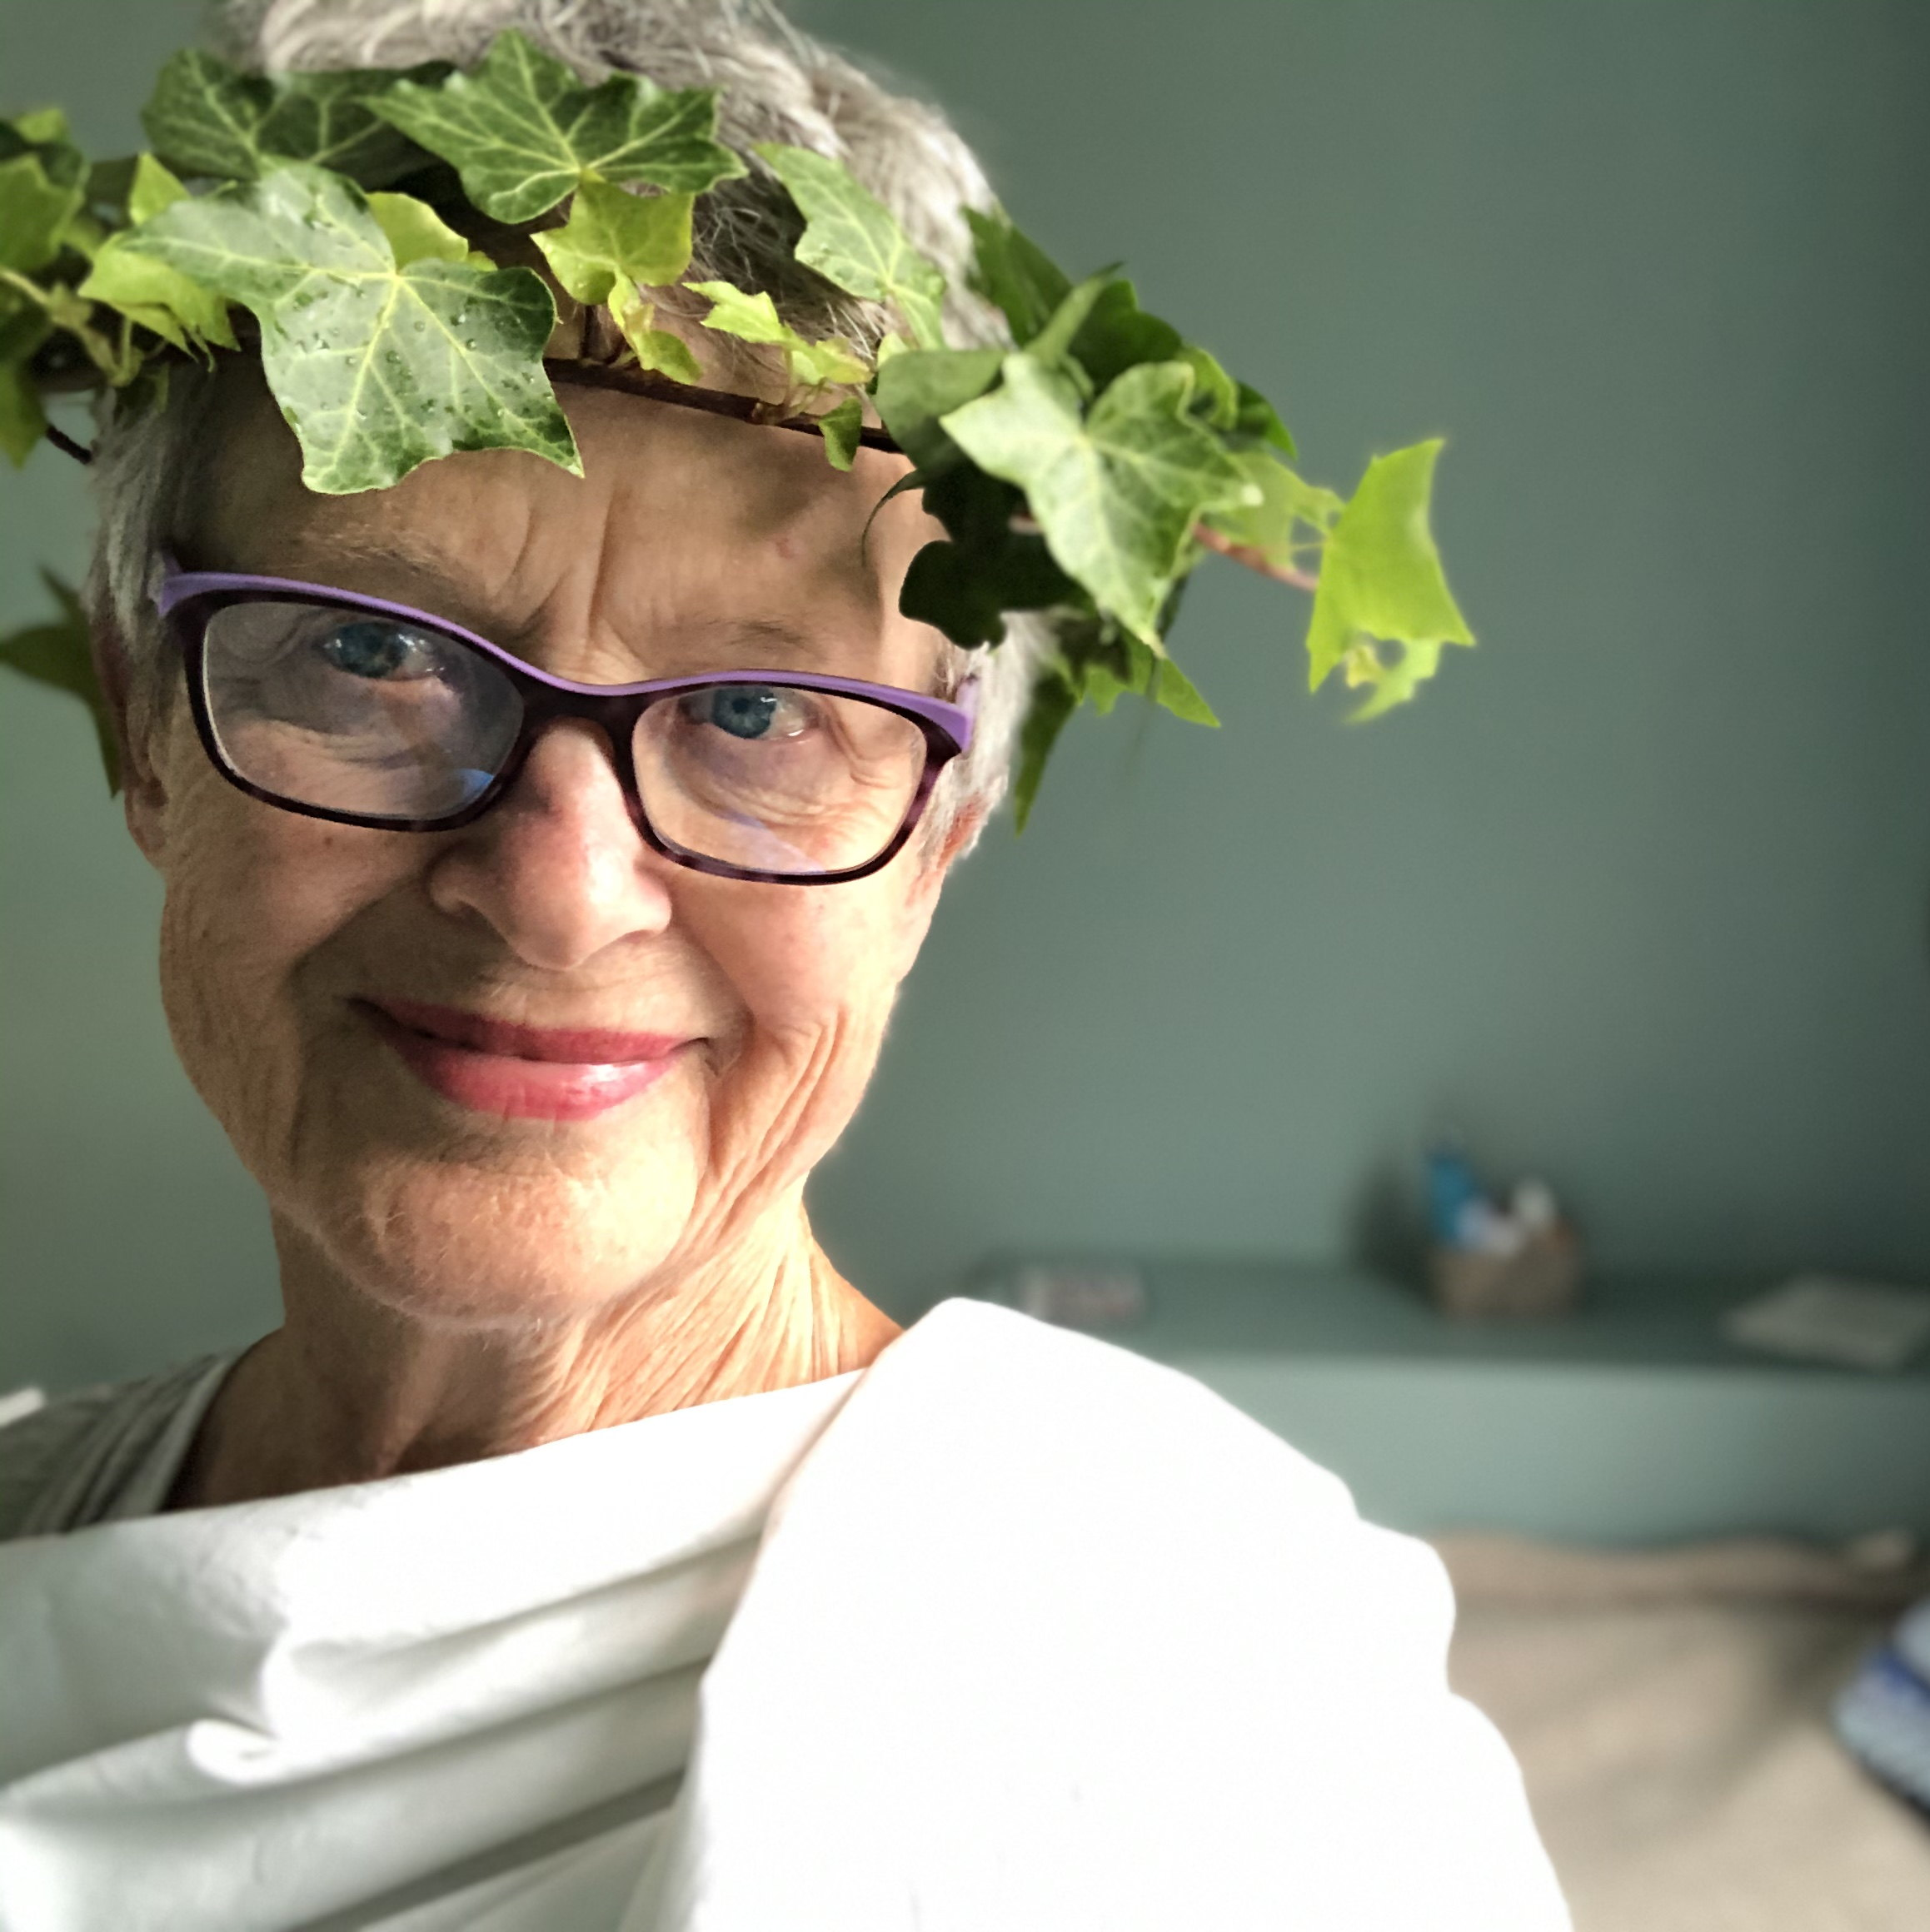 Rachel McAlpine with ivy crown wrapped in a sheet